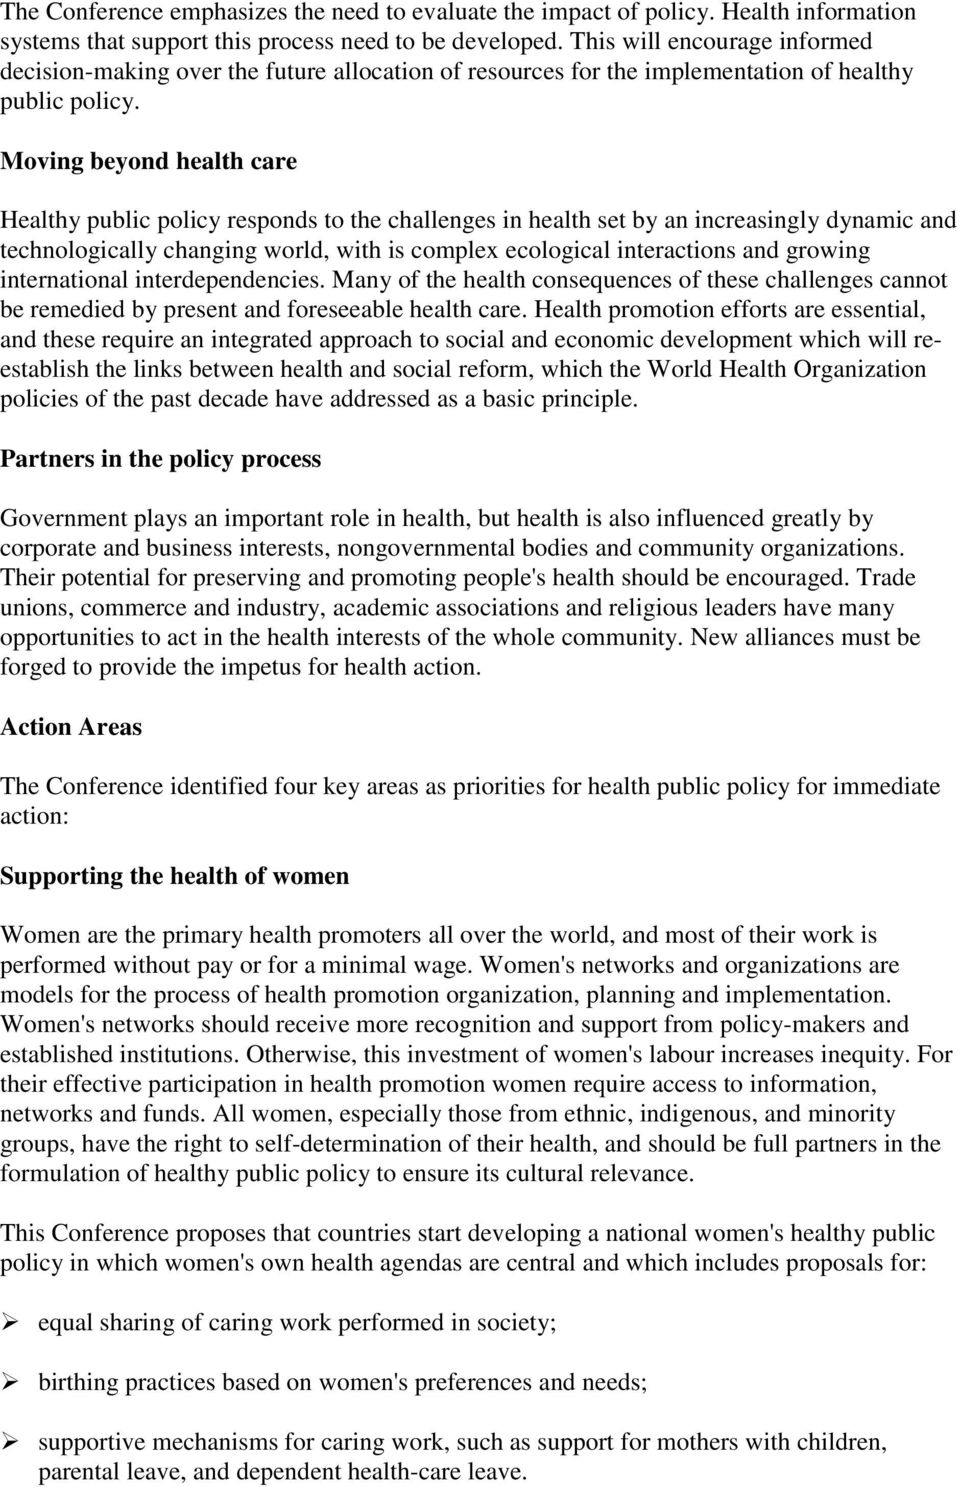 Moving beyond health care Healthy public policy responds to the challenges in health set by an increasingly dynamic and technologically changing world, with is complex ecological interactions and